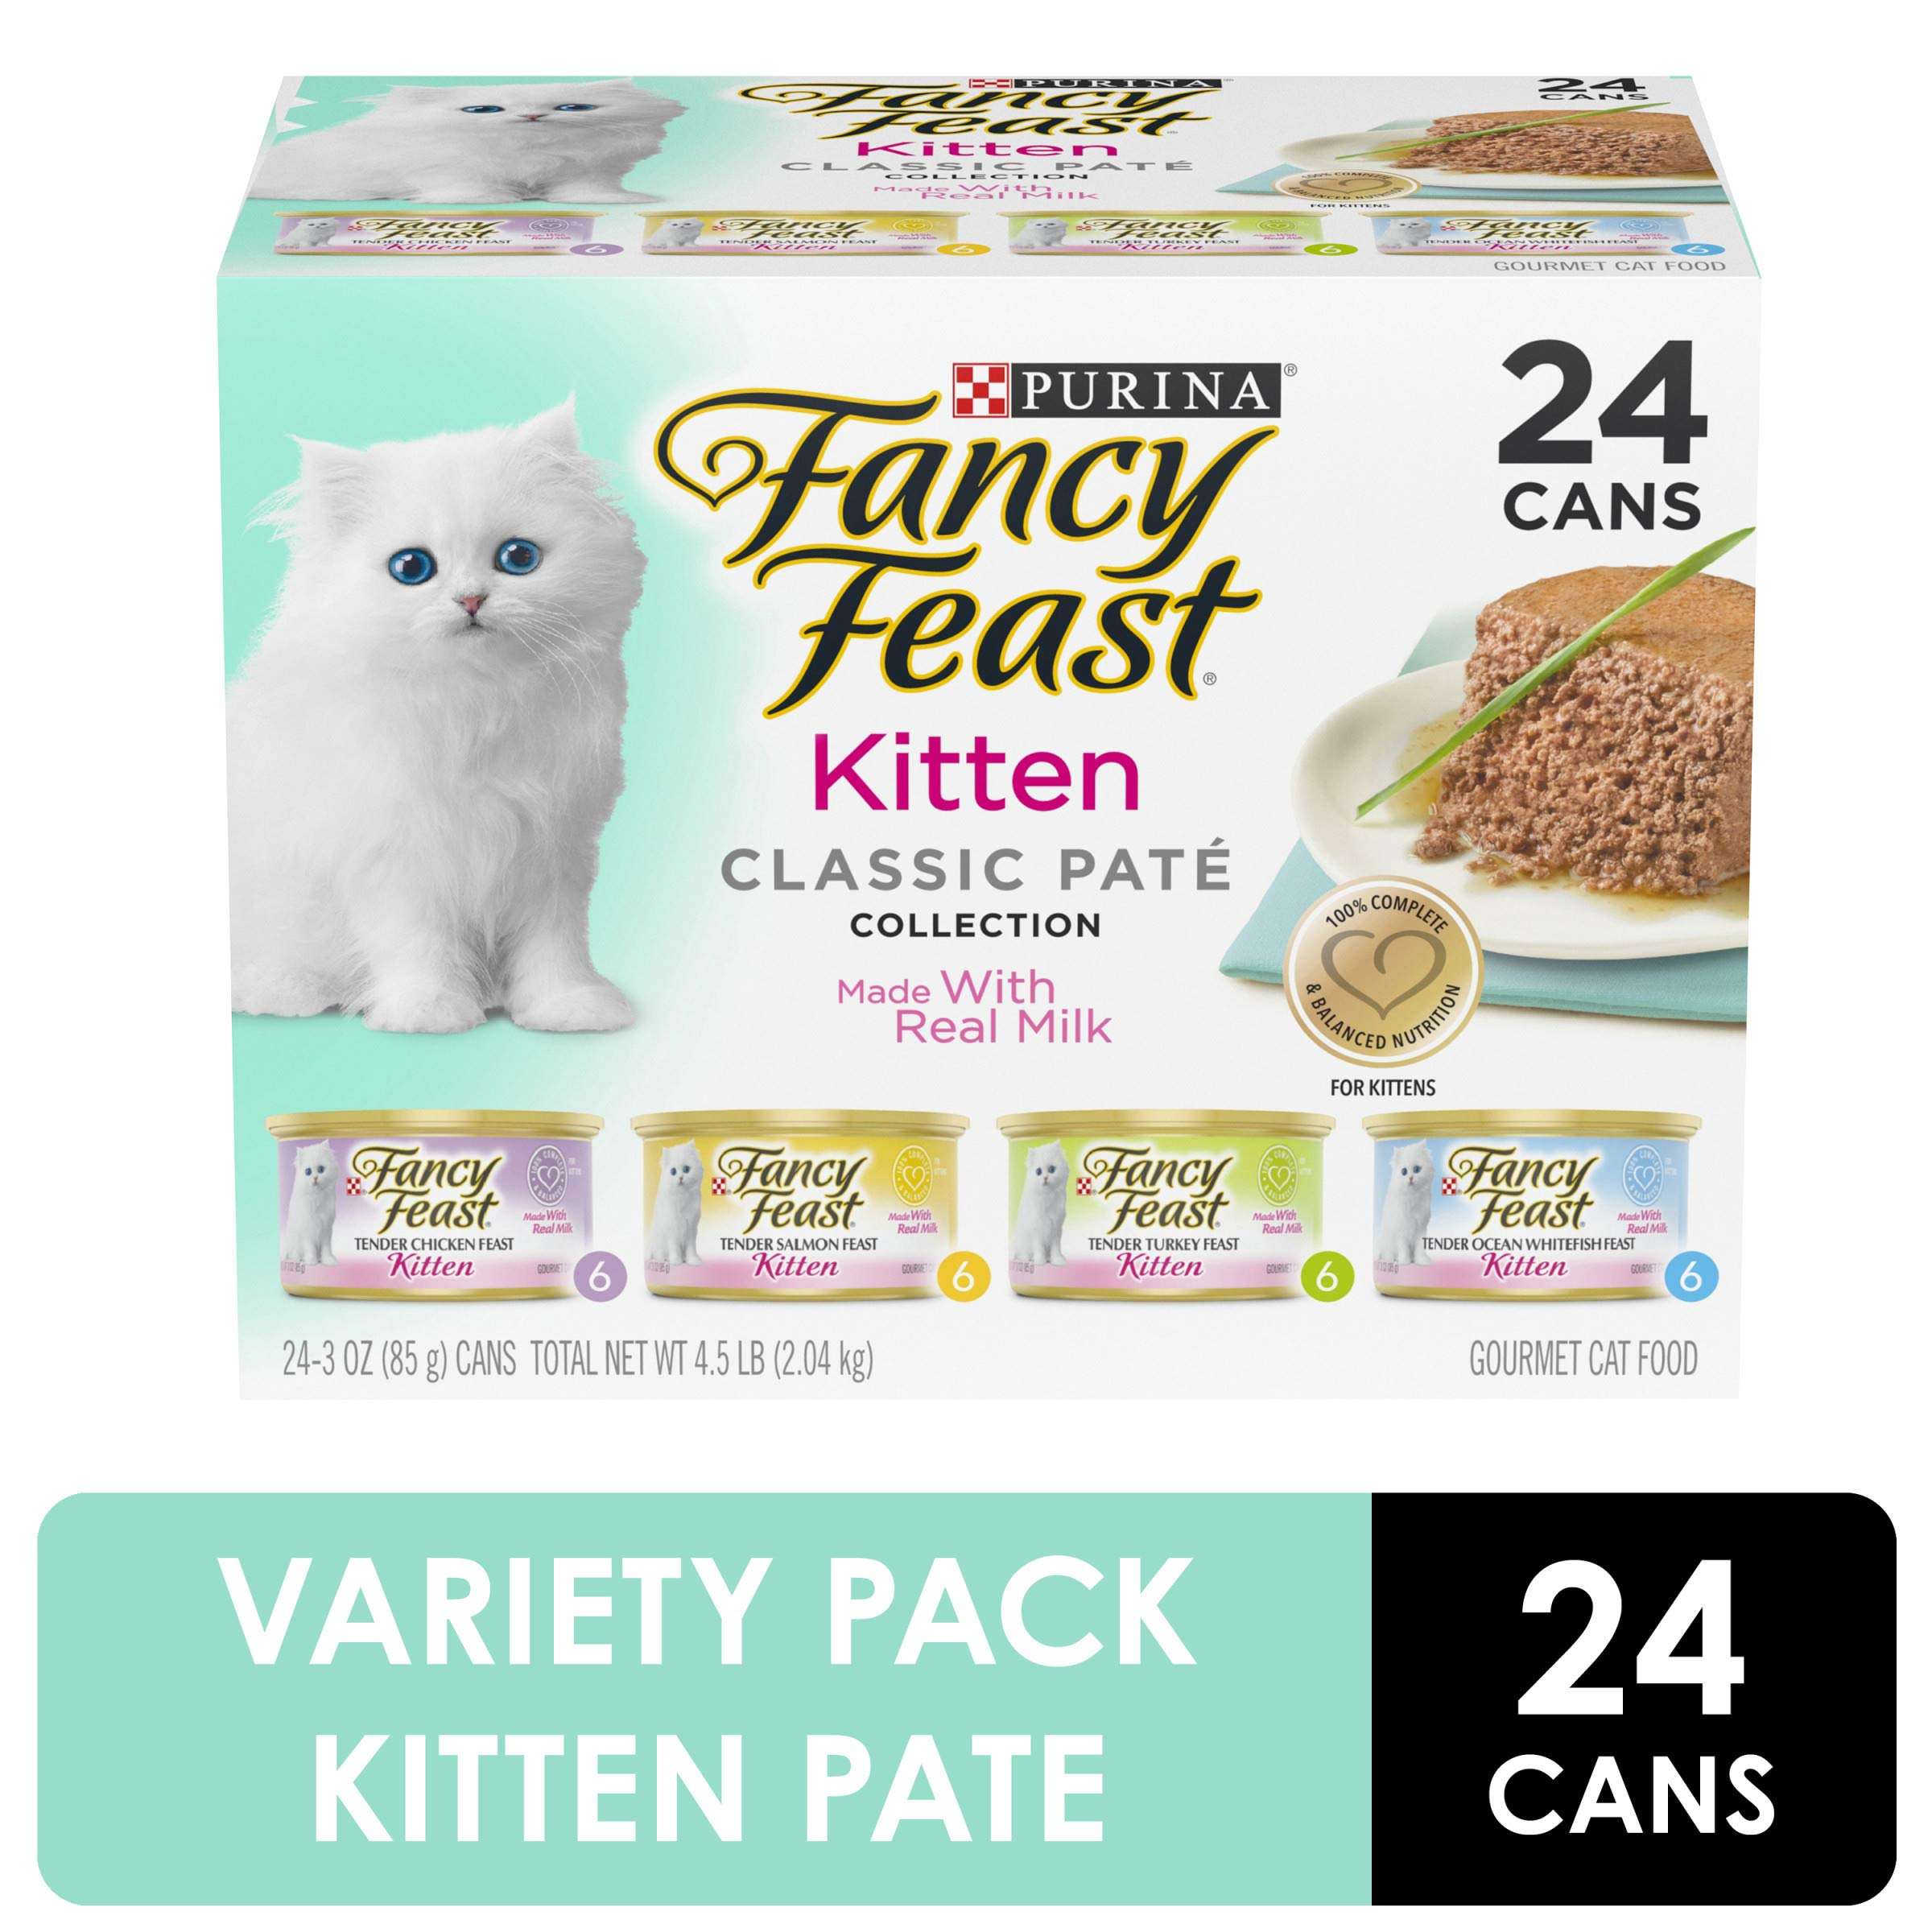 Purina Fancy Feast Grain Free Pate Wet Kitten Food Variety Pack, Kitten Classic Pate Collection, 4 flavors - (24) 3 oz. Boxes by Purina Fancy Feast